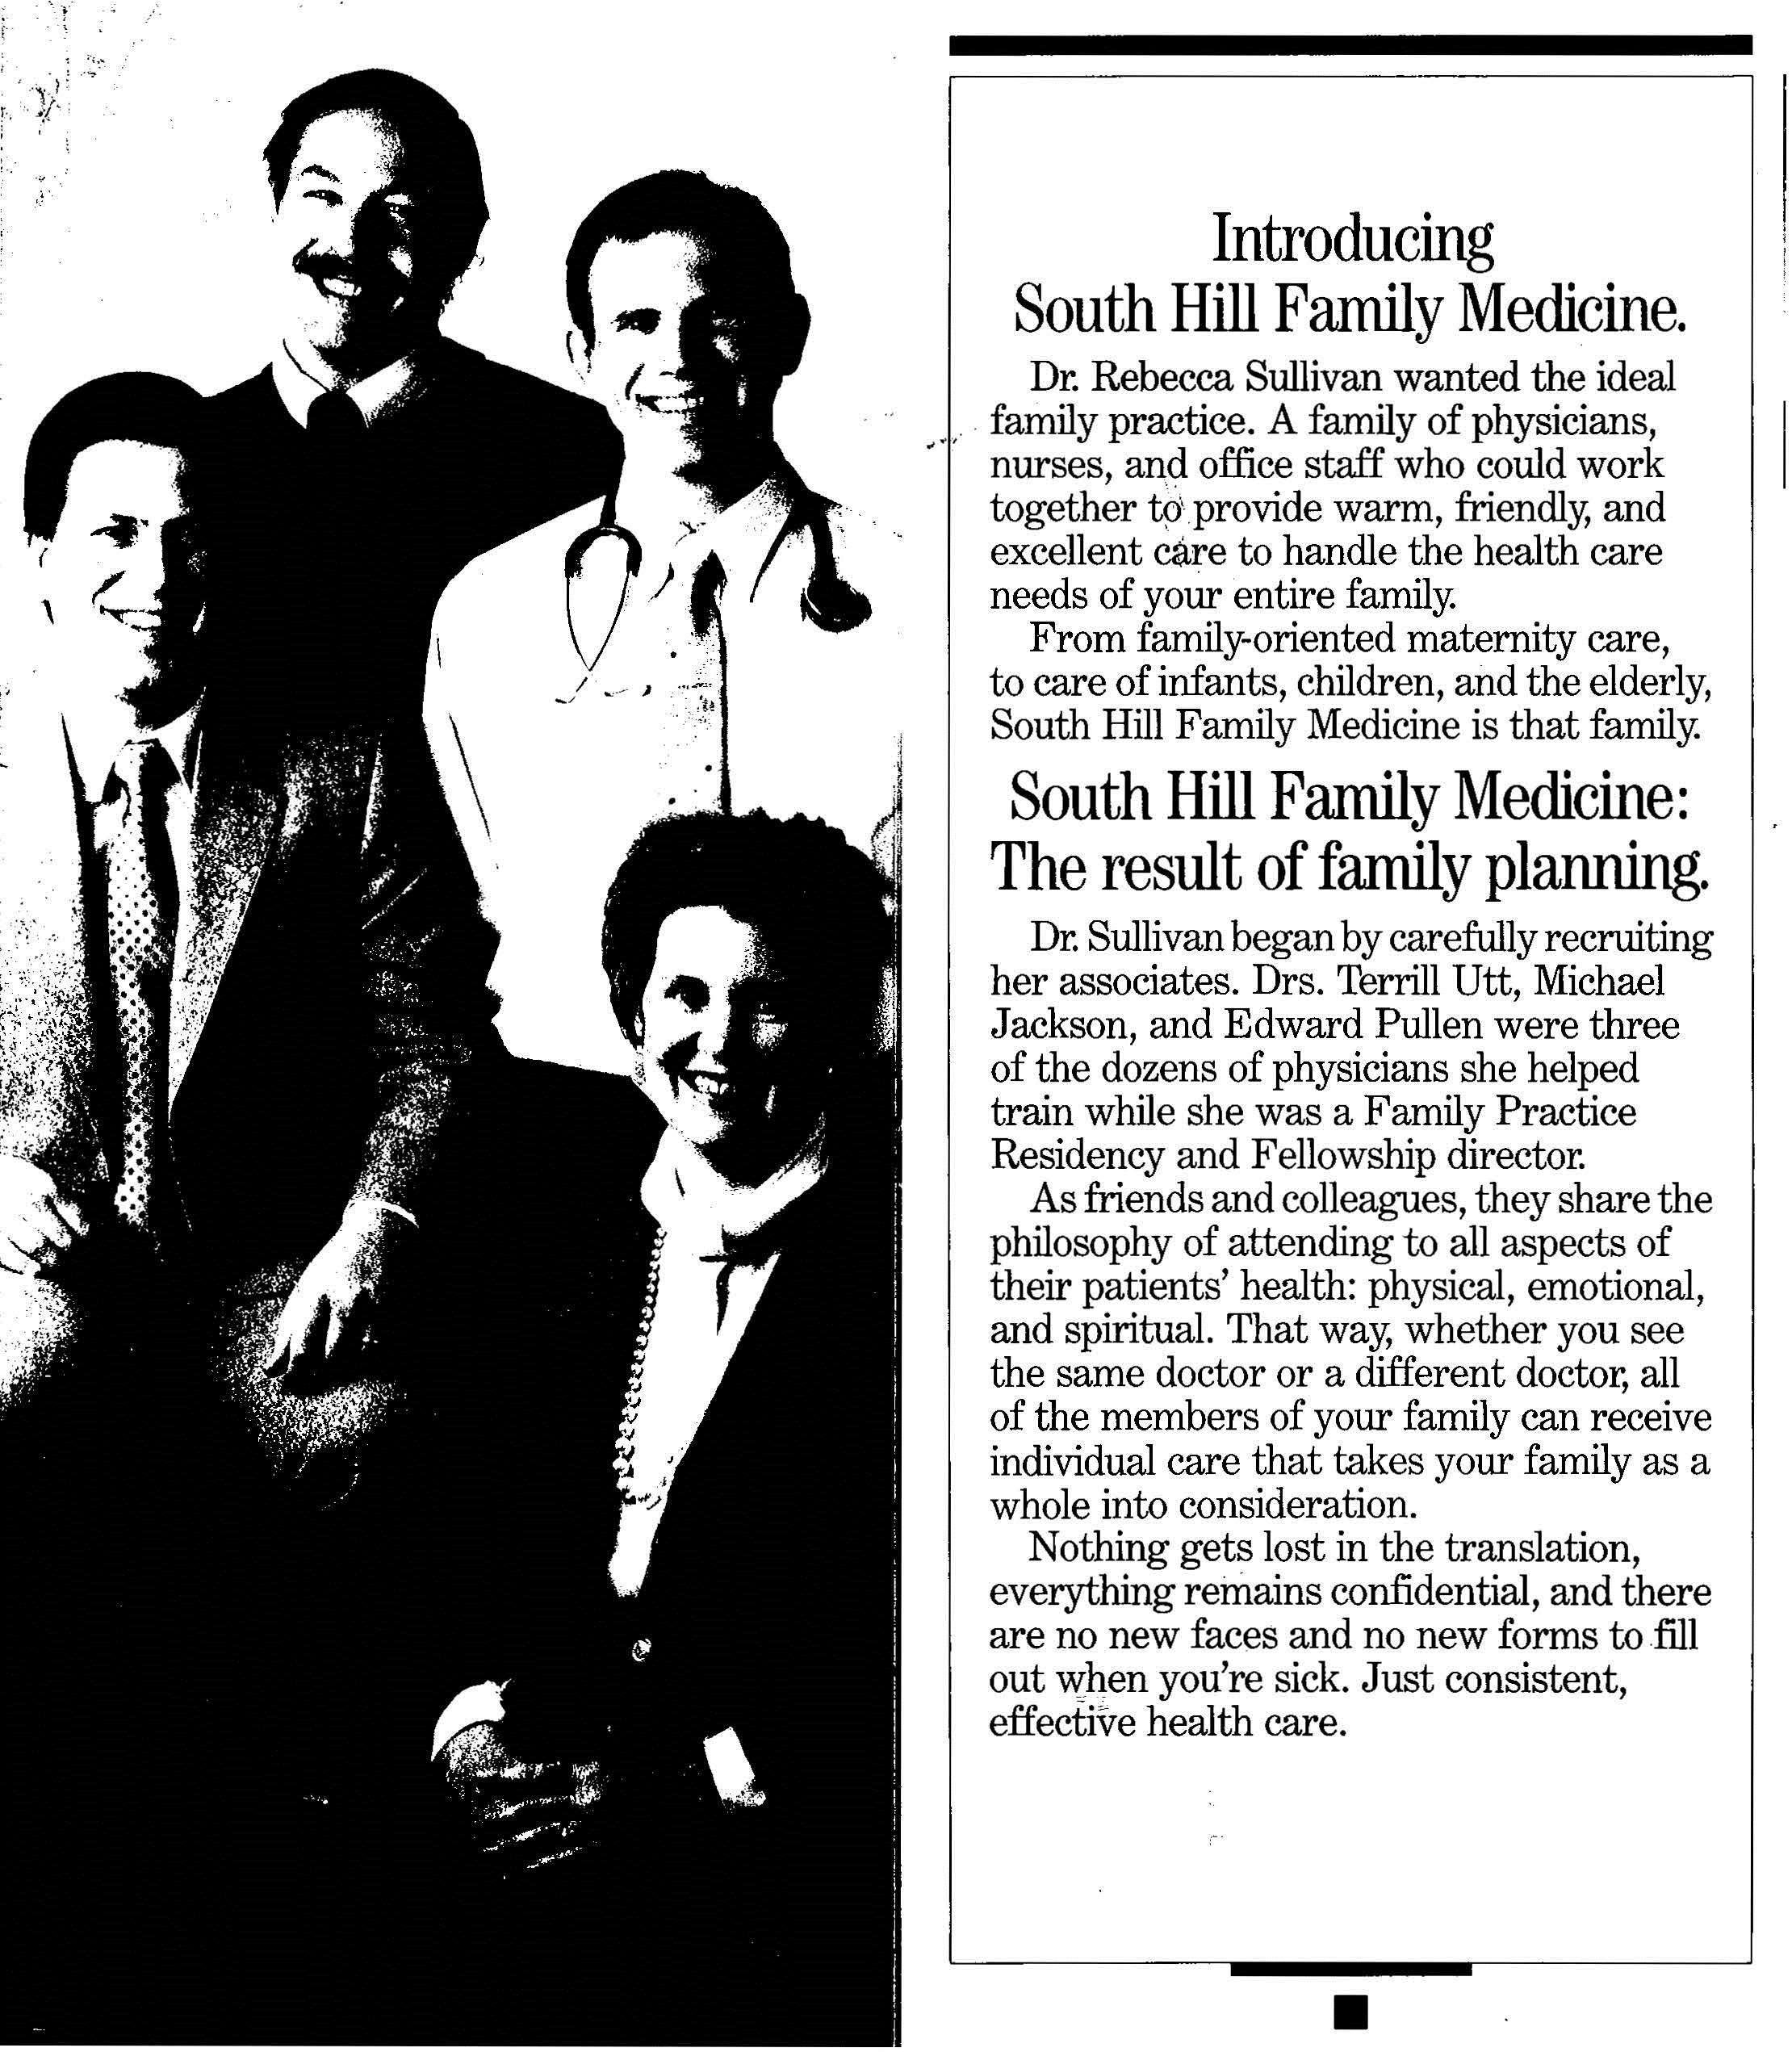 Dr. Sulliva, Dr. Utt, Dr. Jackson, and Dr. Pullen in an early advertisement in the Tacoma News Tribune